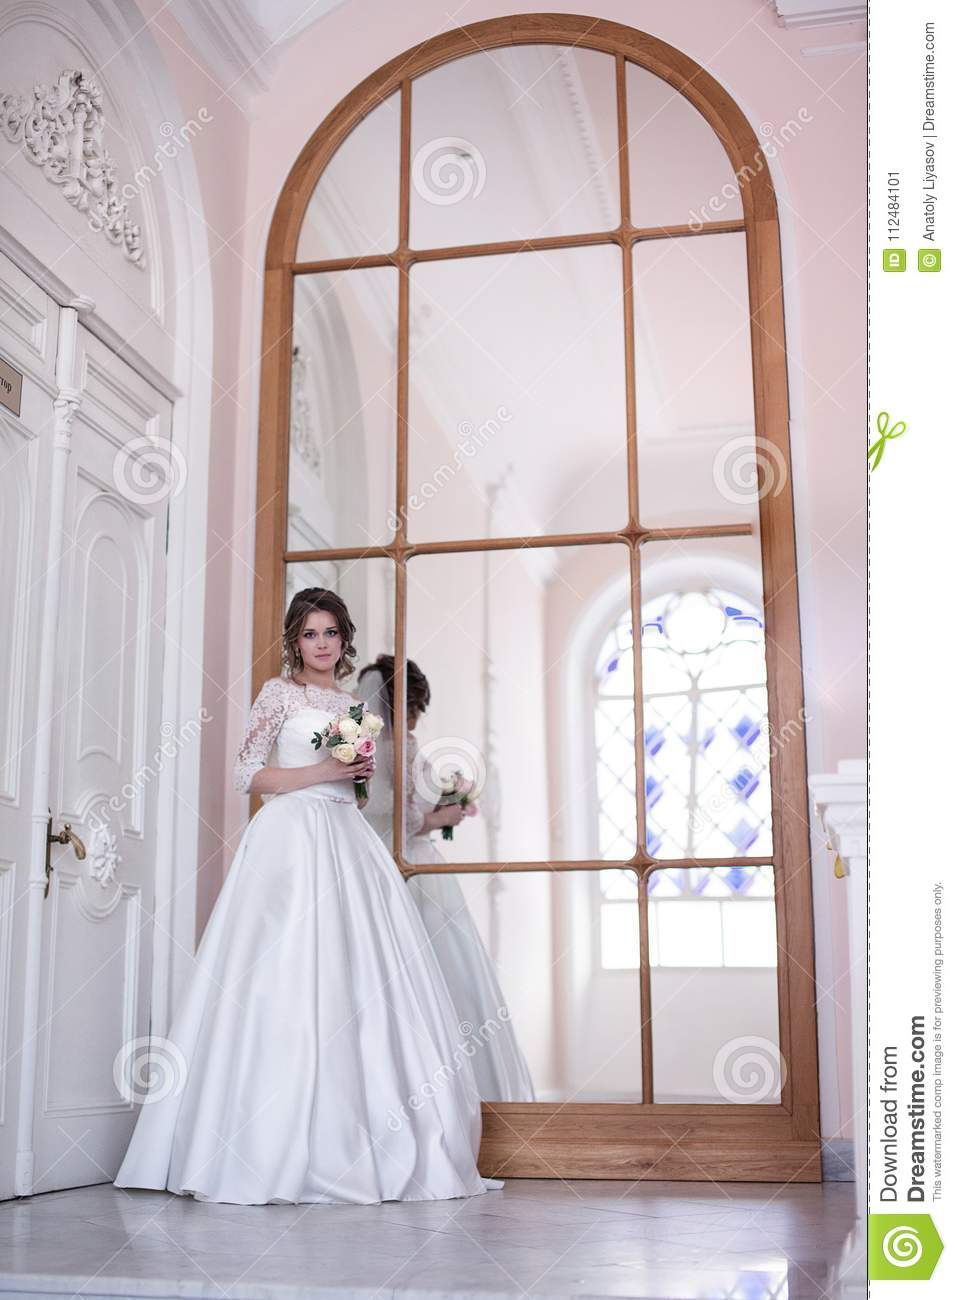 Huge Mirror Portrait Of The Bride Near The Mirror Stock Image Image Of Adult